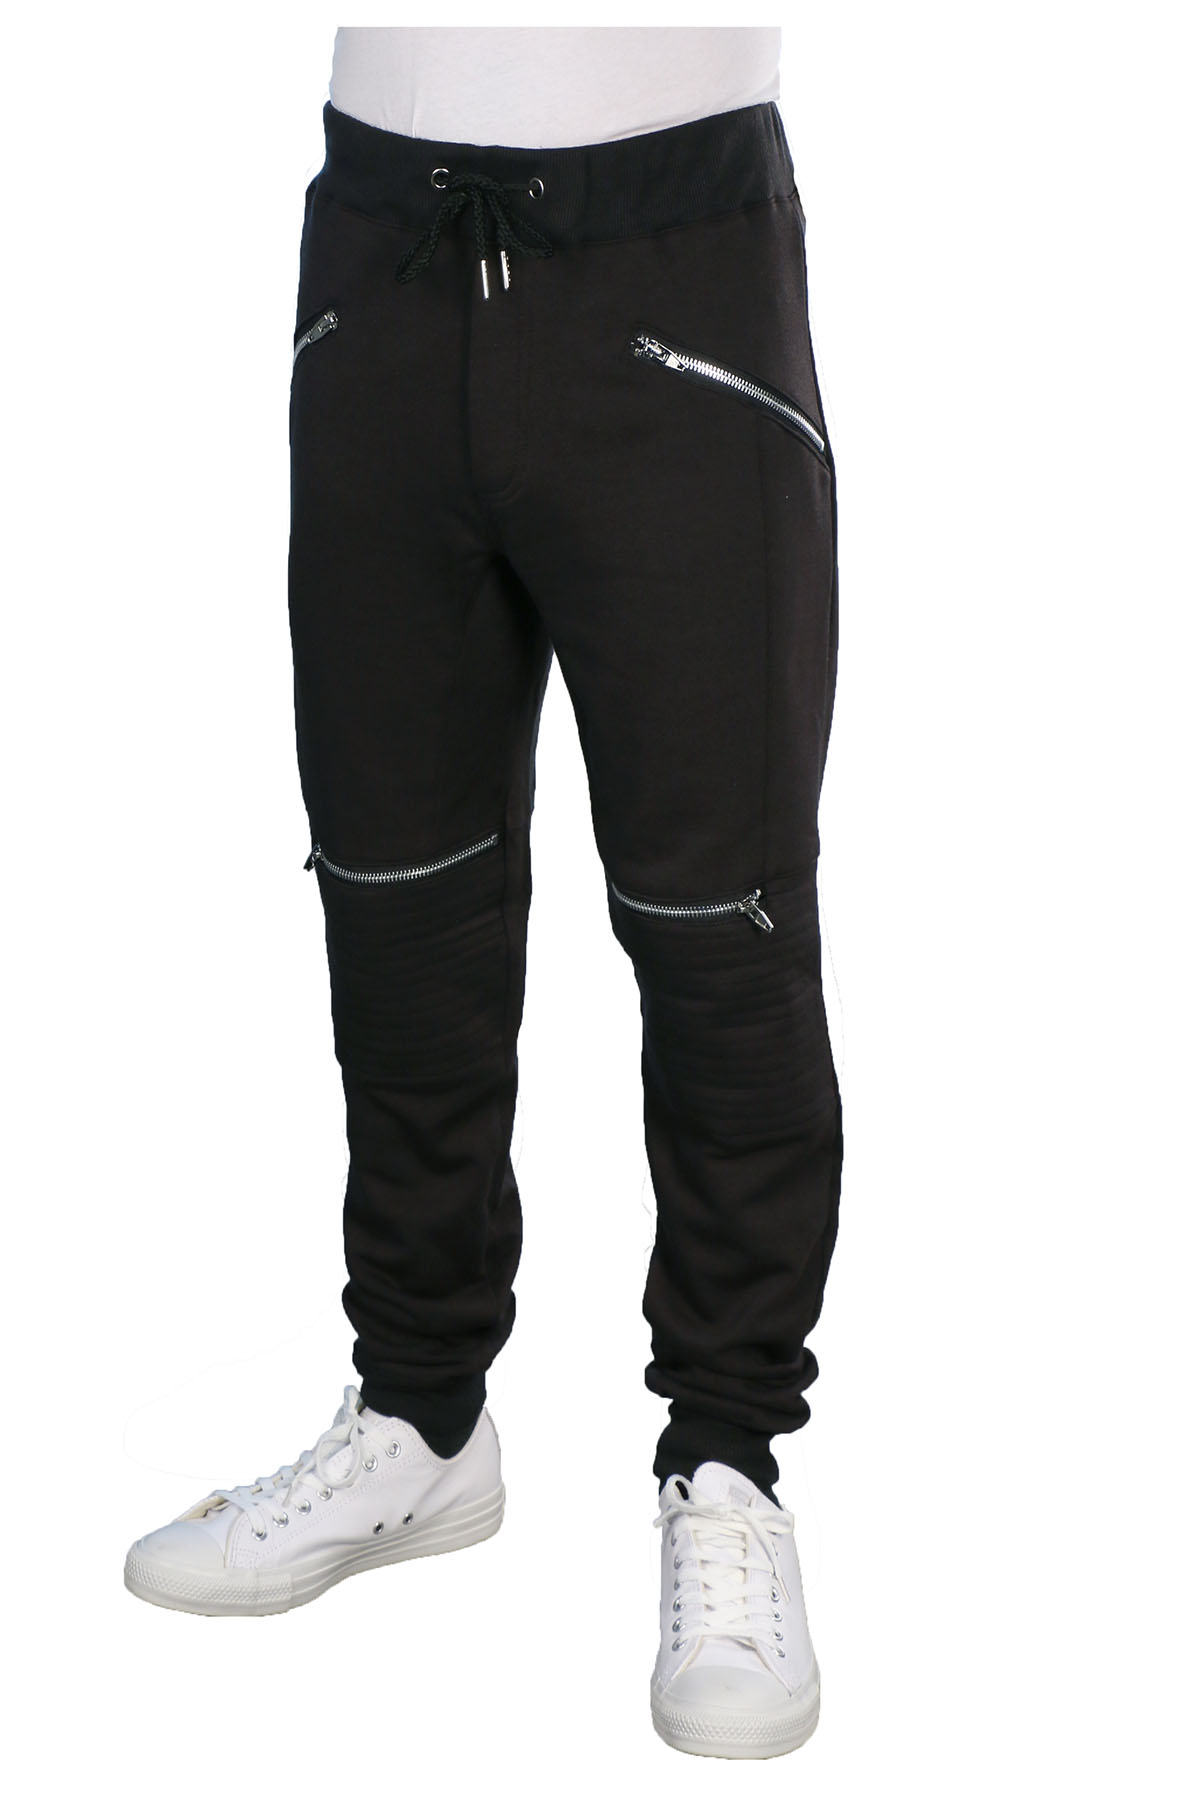 Souped-Up Sweatpants are a simpler version, styled more for casual wear. Just two pockets in front, one zip pocket in back, in a hearty oz. cotton knit that's soft and comfortable. Elastic waist with web belt and buckle keeps them from sagging on you.